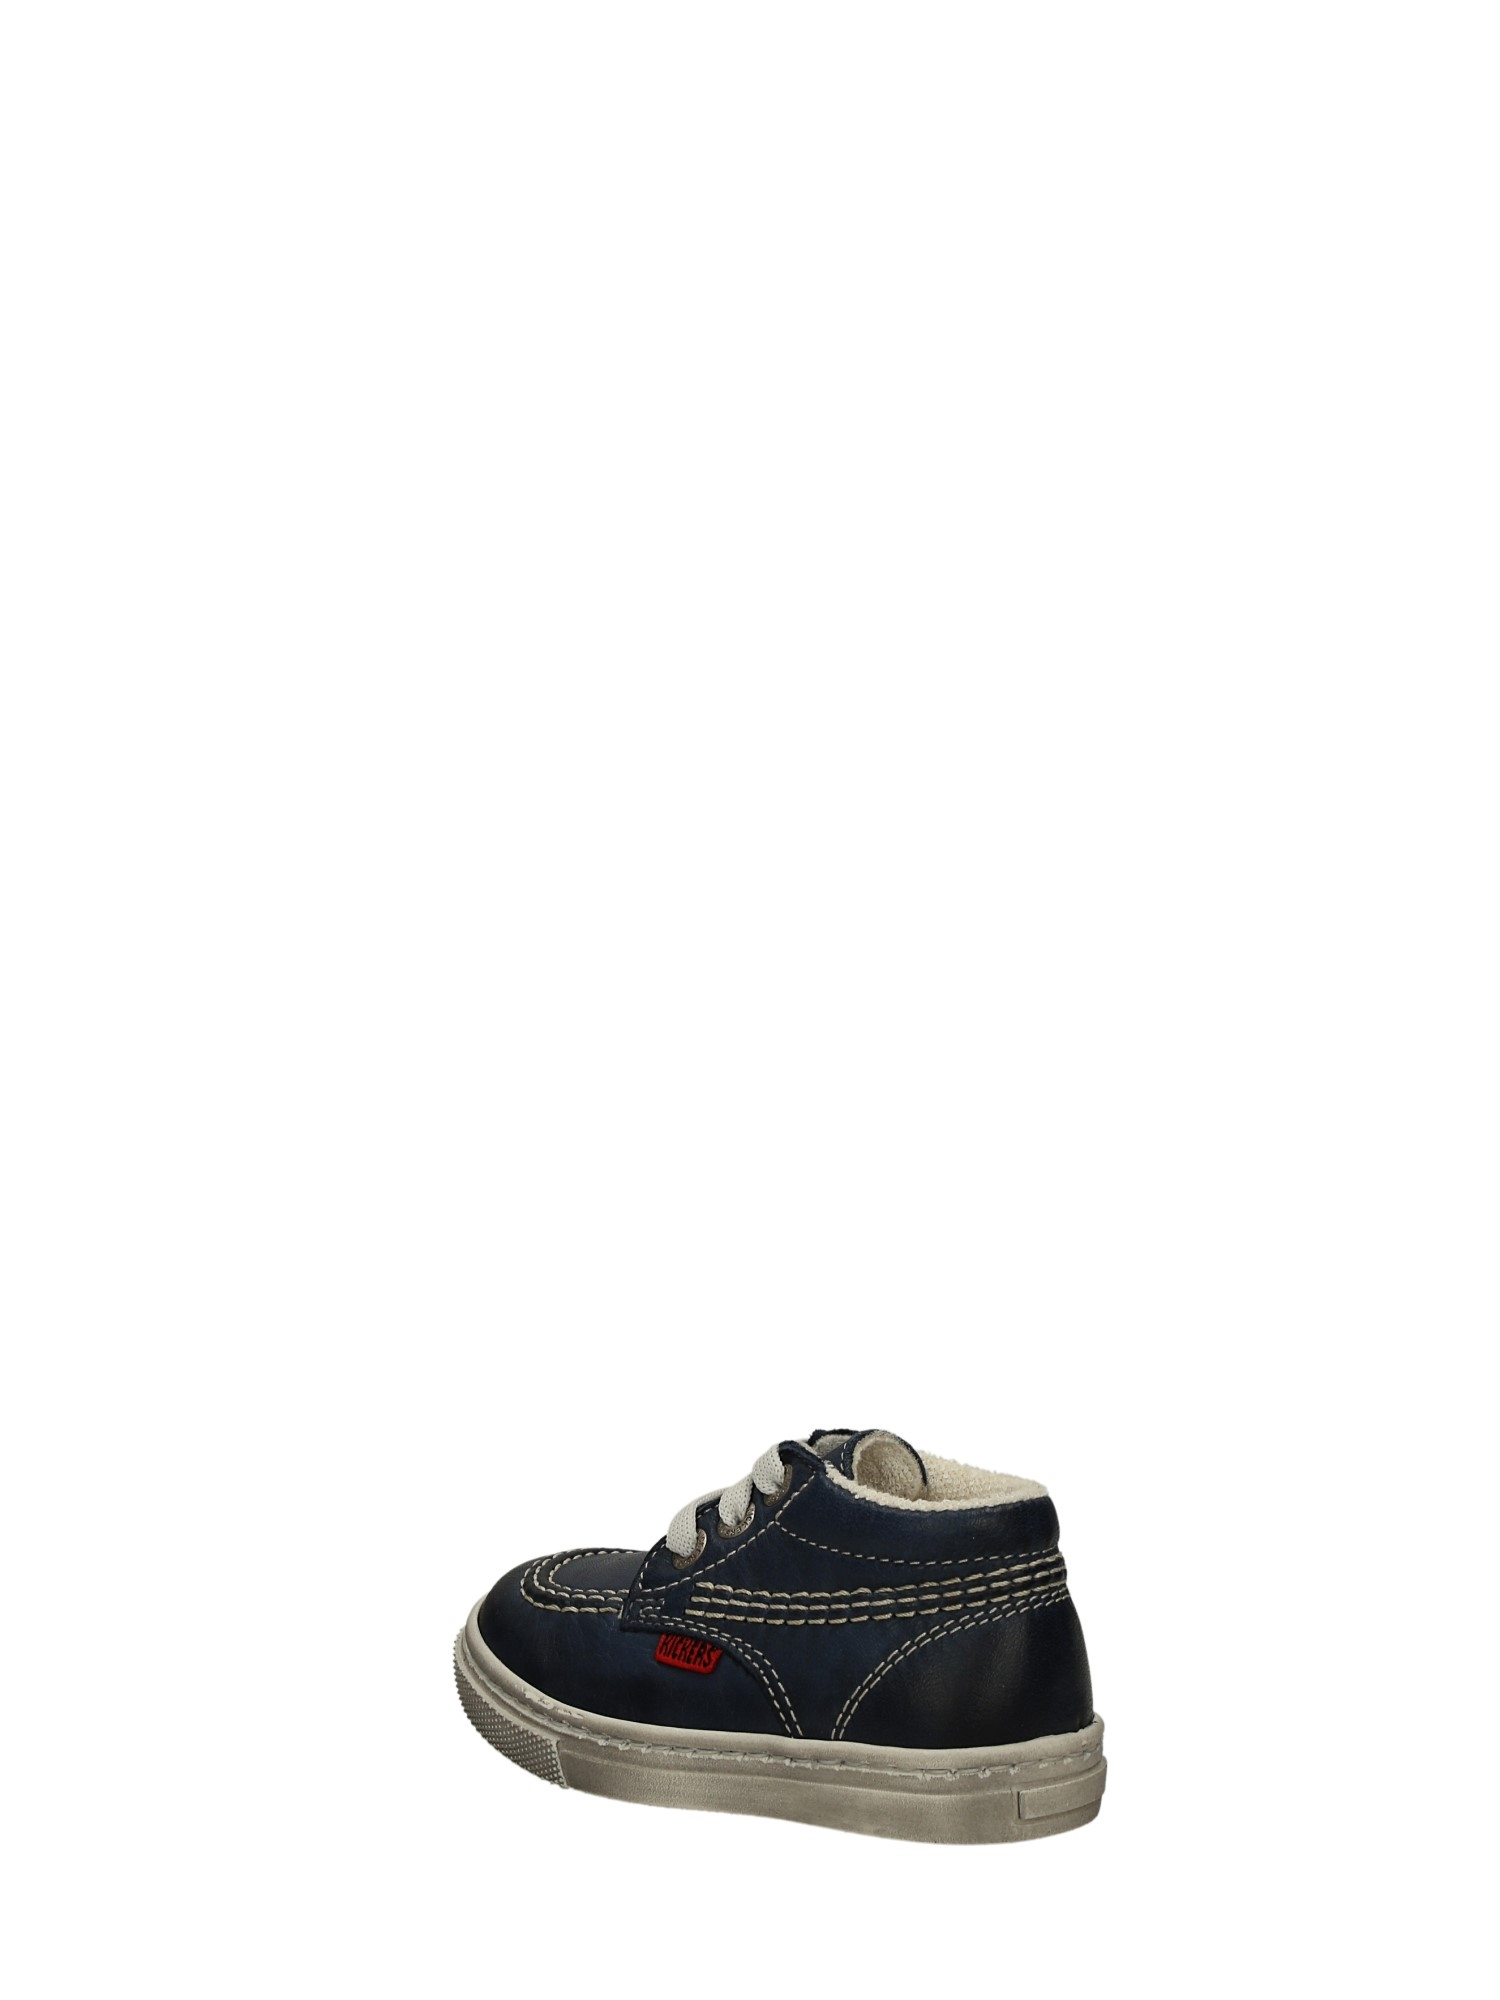 Sneakers-Basse-Bambino-Kickers-EVERYDAY-Autunno-Inverno